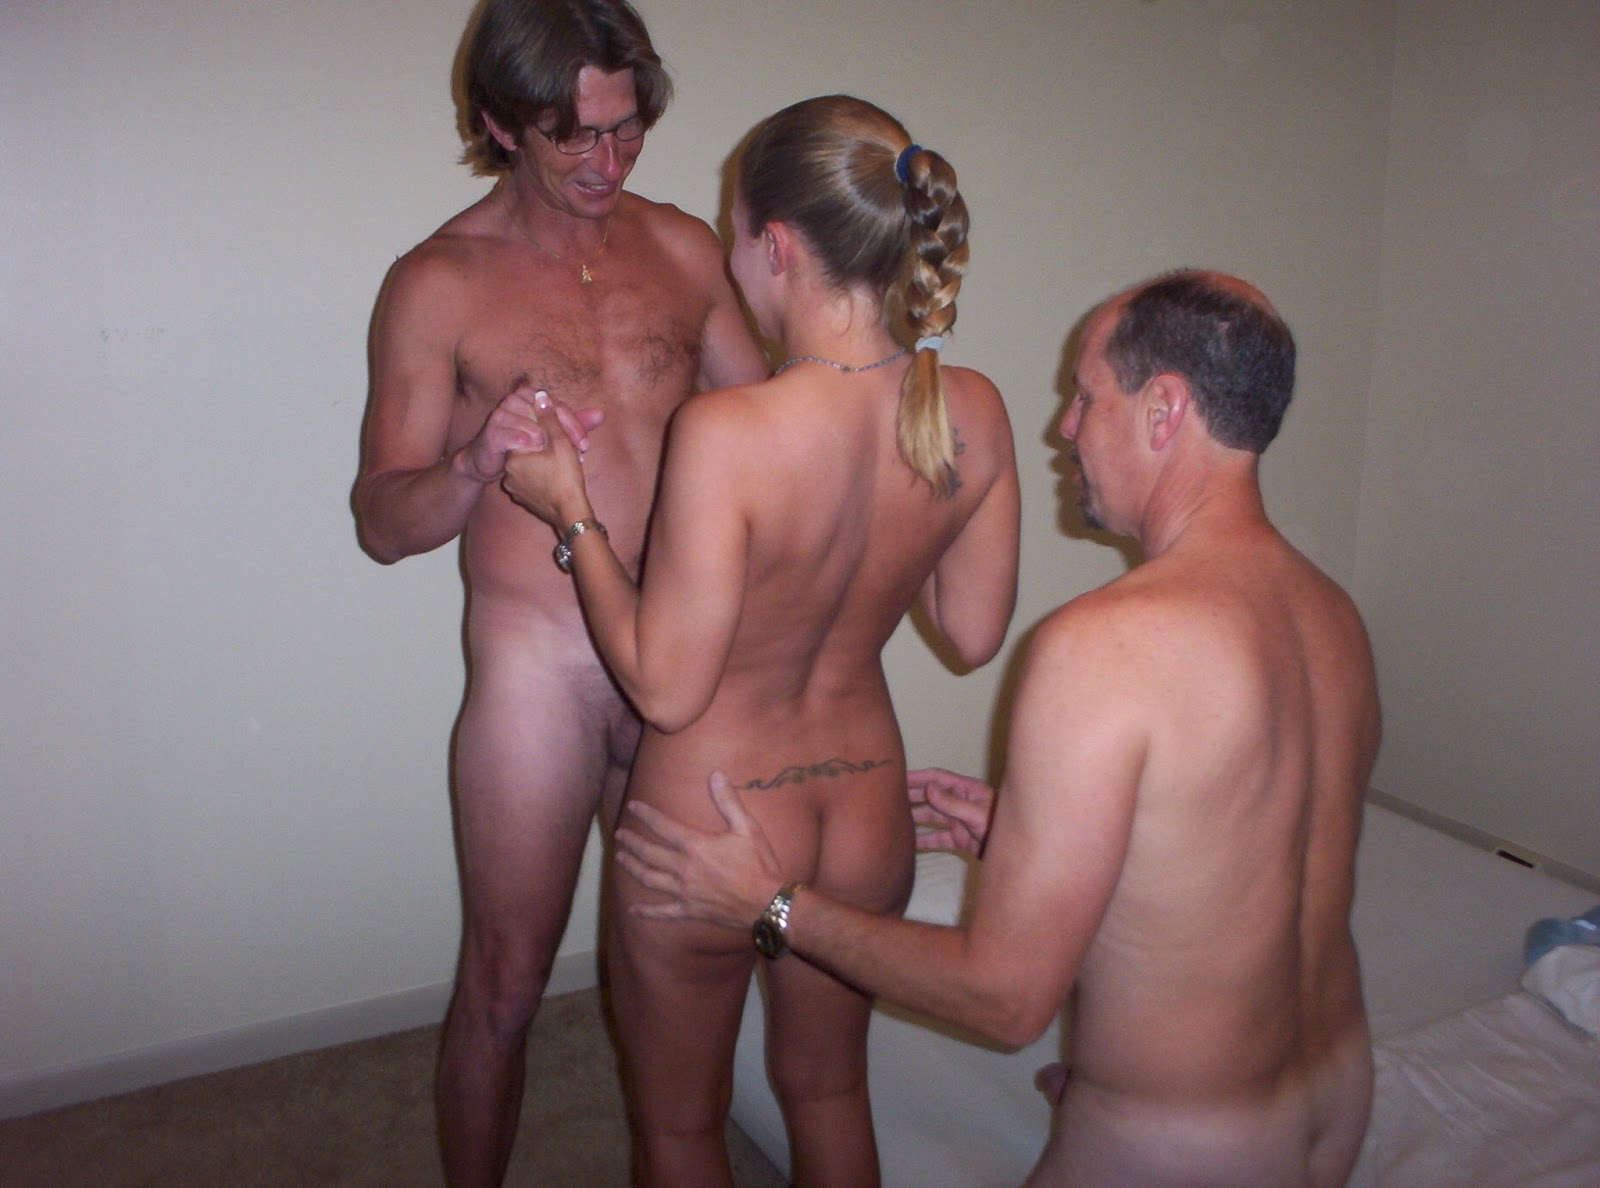 Real swinger sites